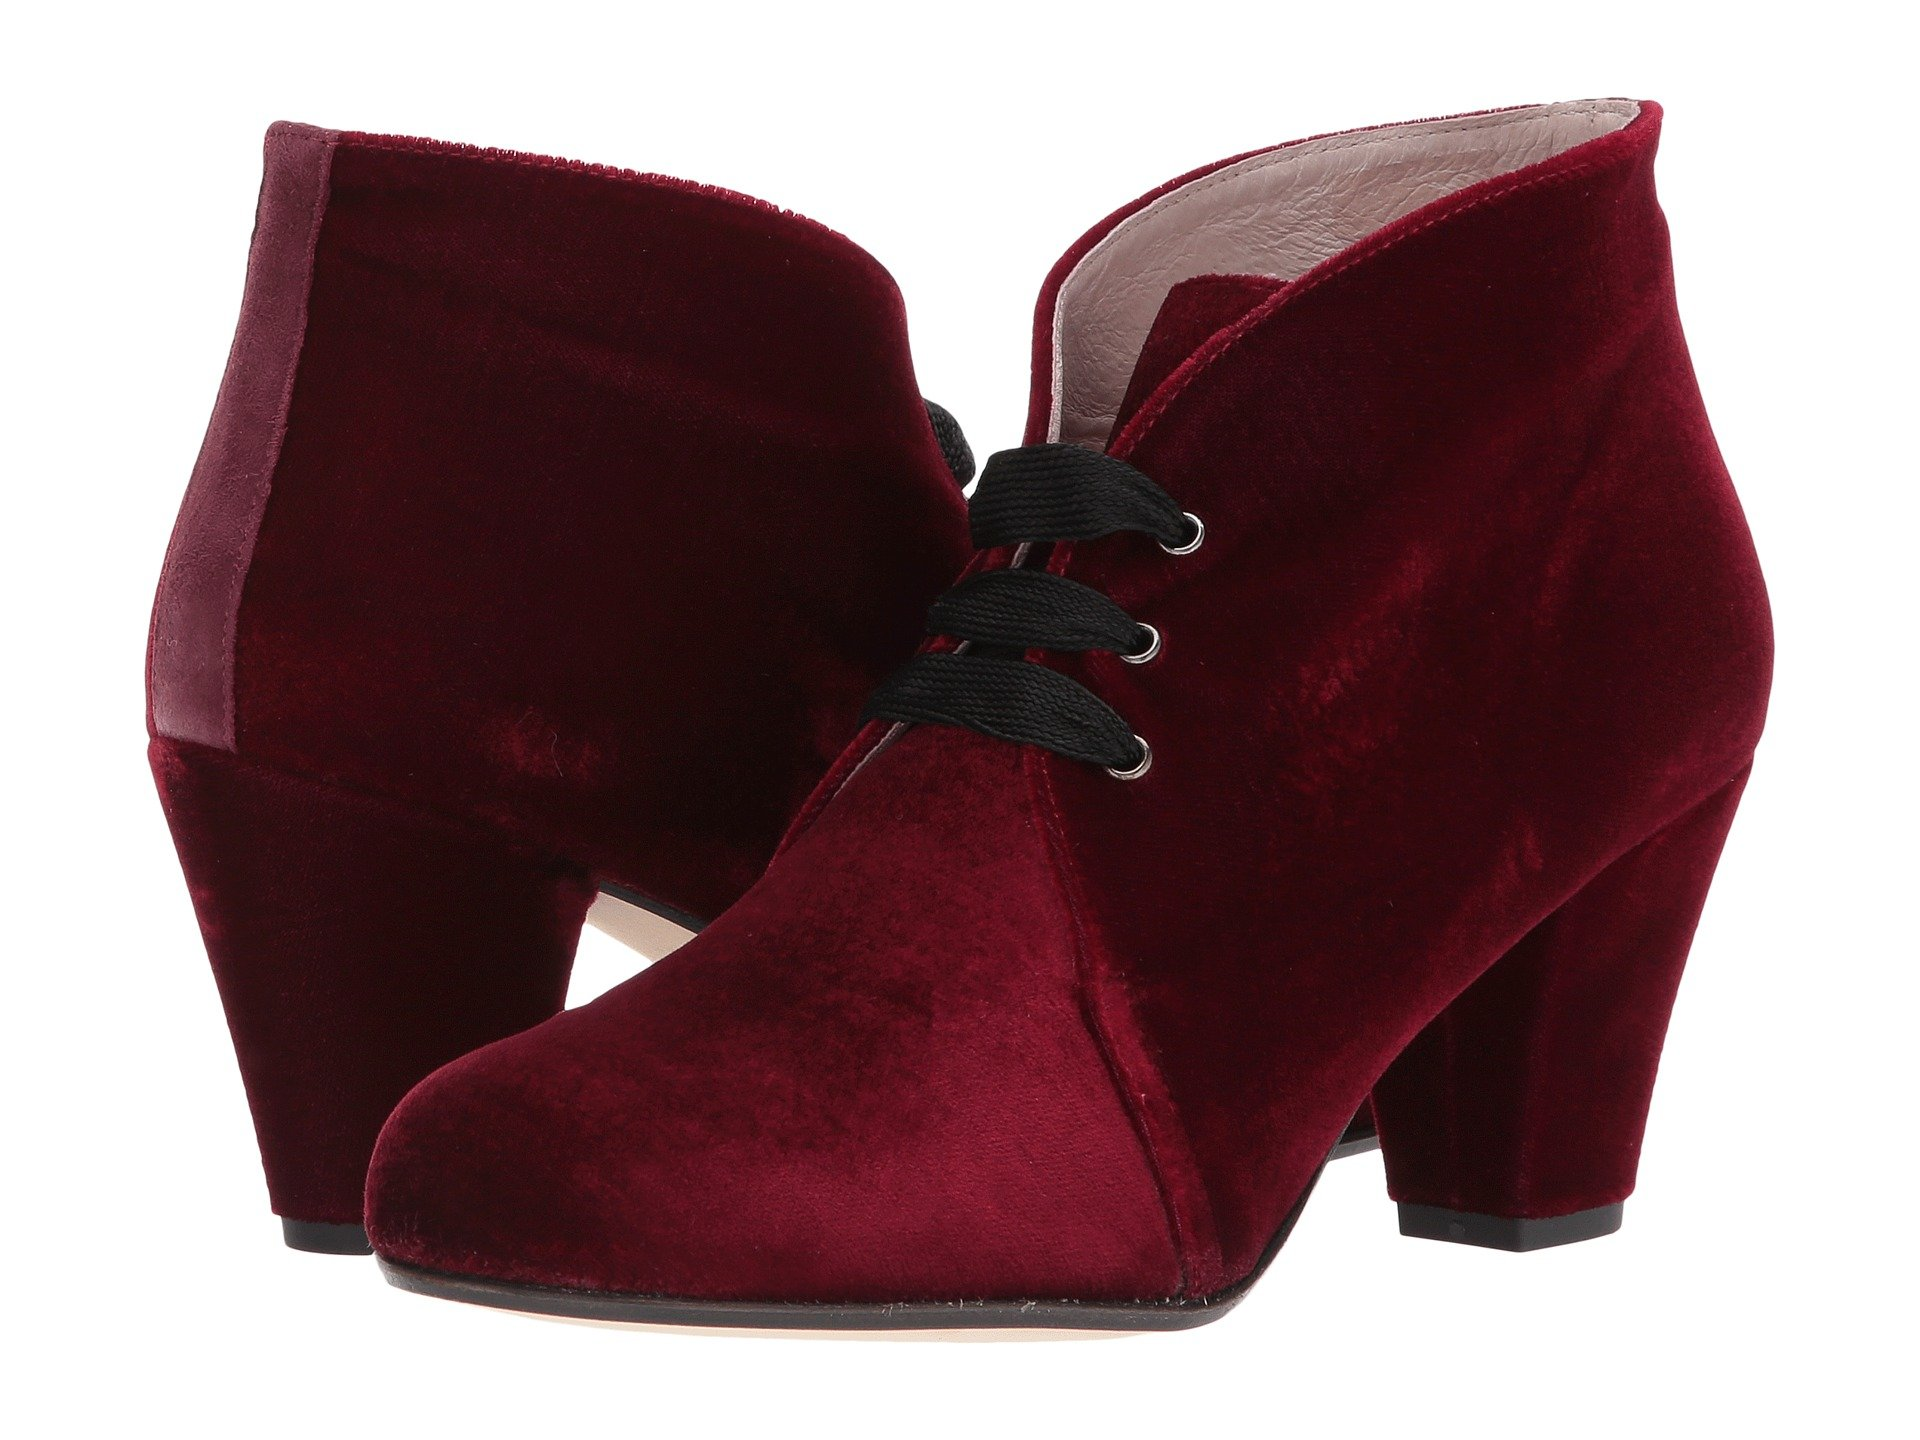 PATRICIA GREEN Clair Lace-Up Bootie in Burgundy